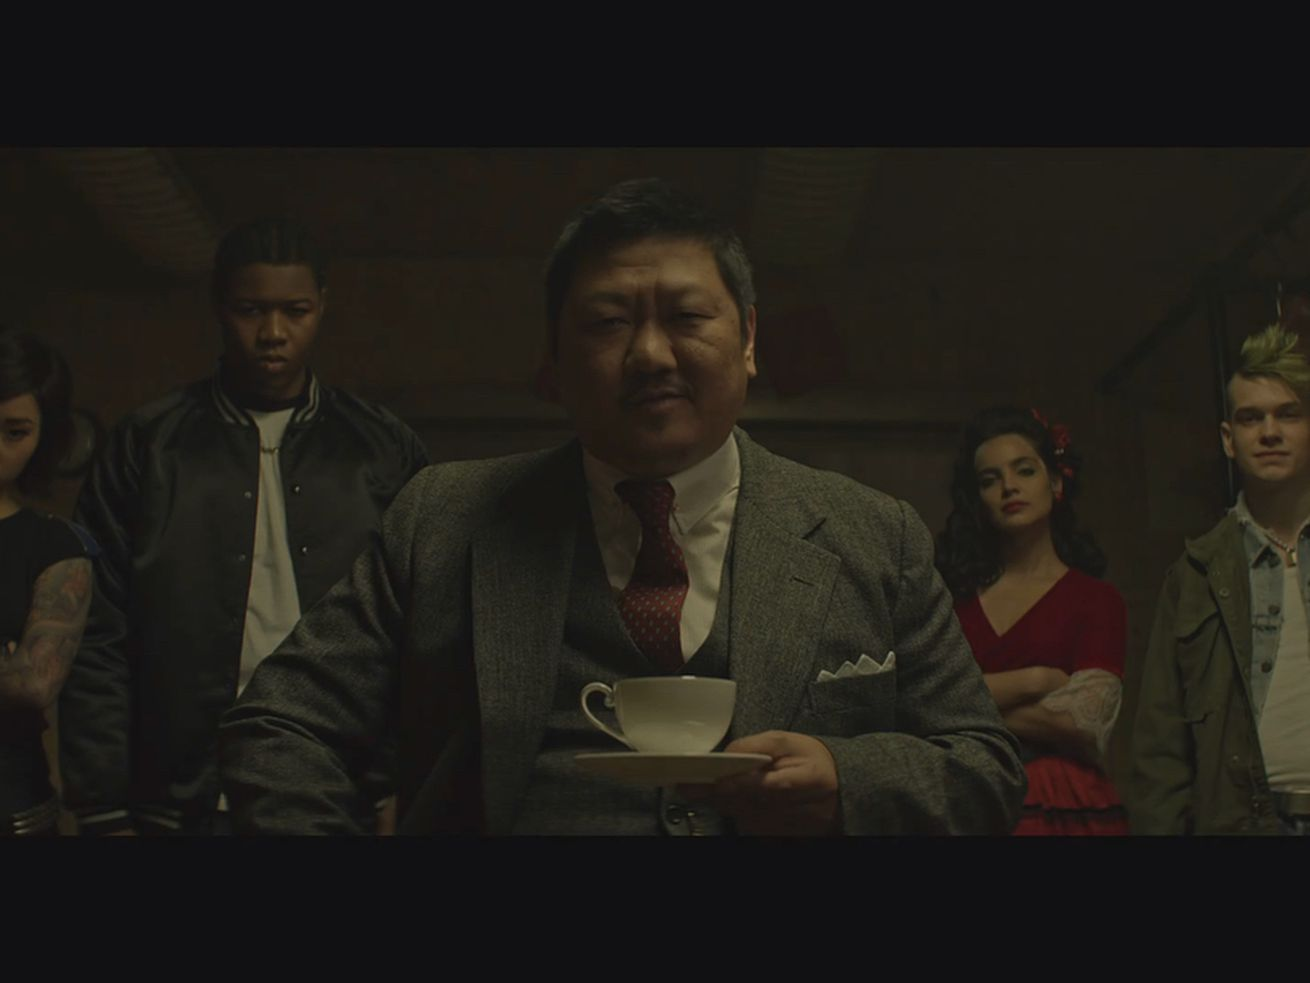 A still from Deadly Class on SyFy